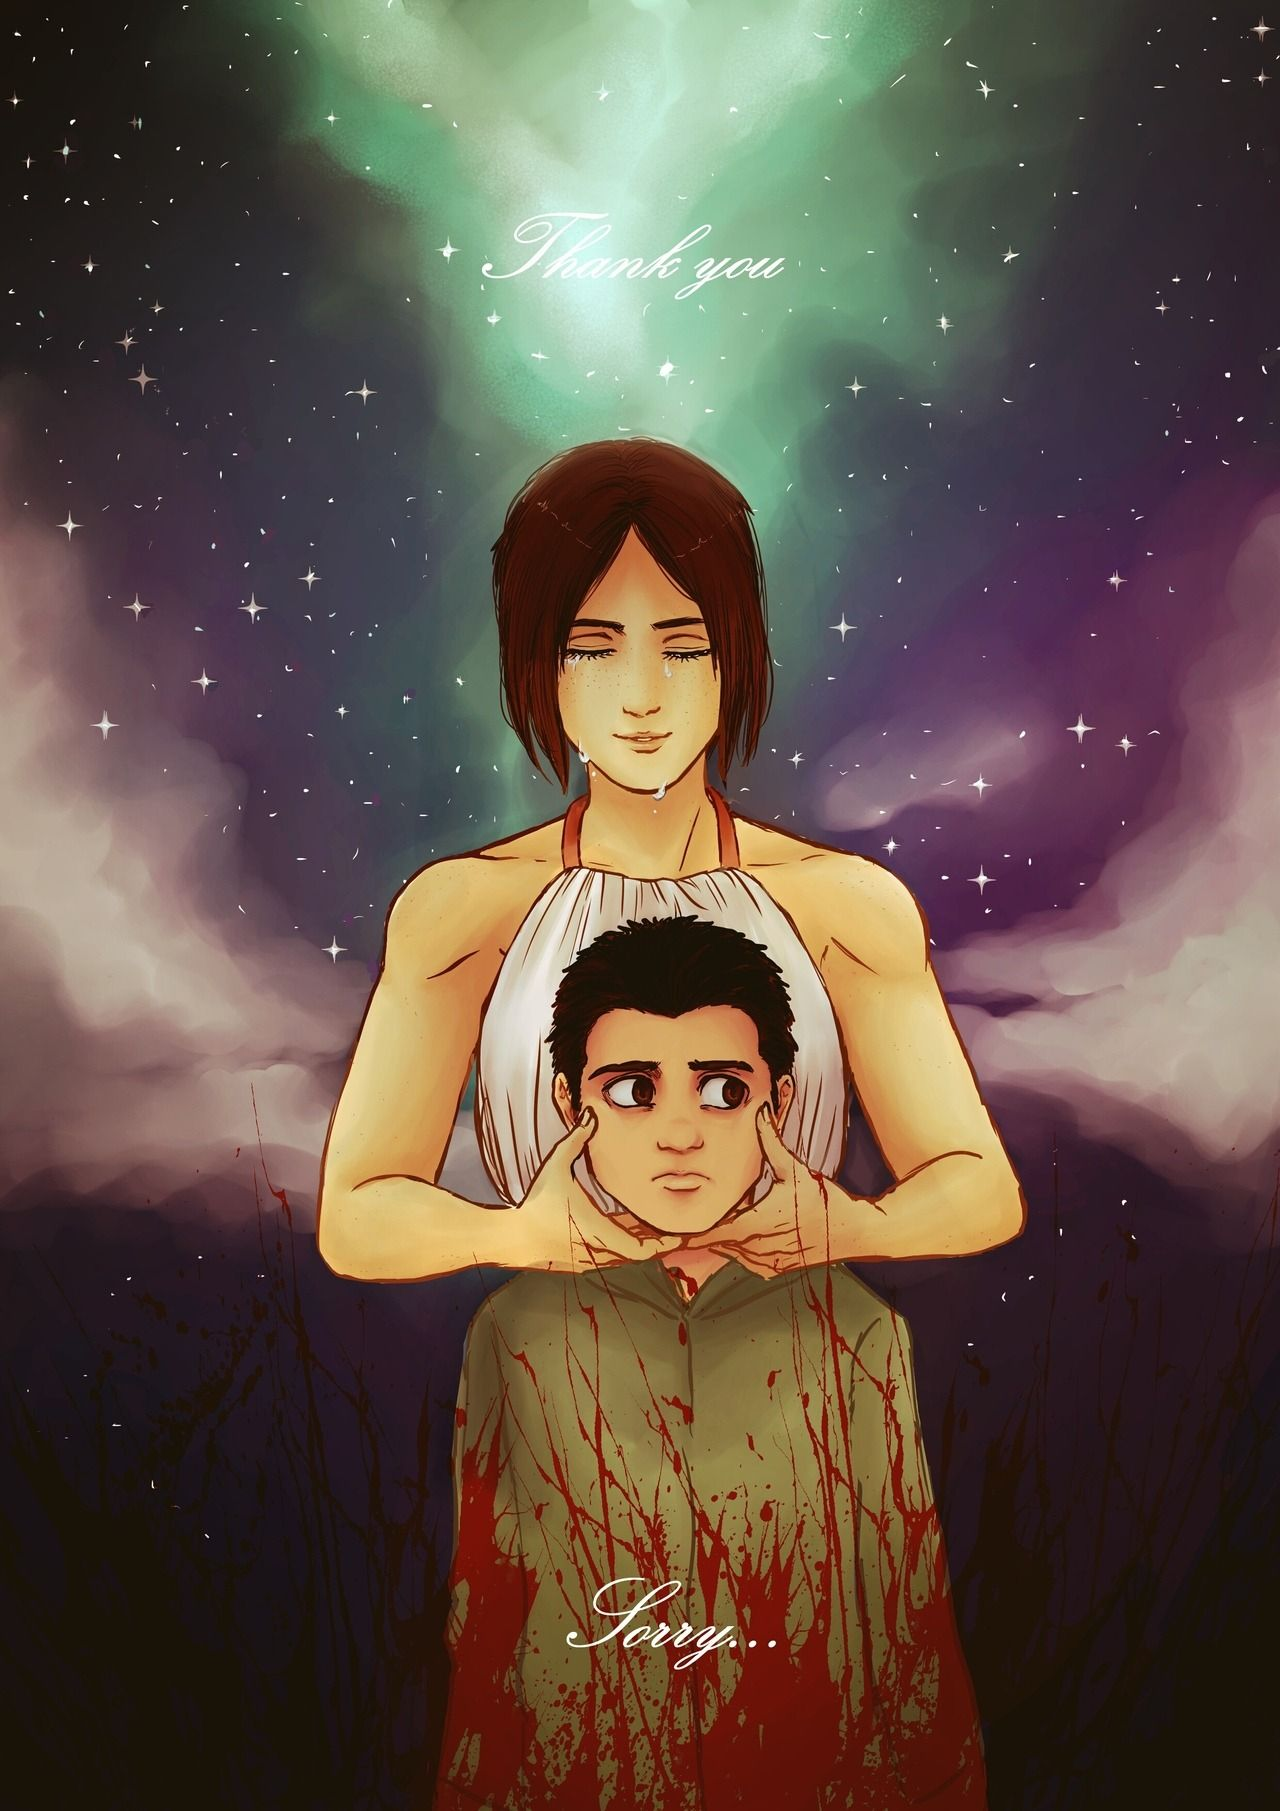 pin by miku on attack on titan pinterest ymir attack on